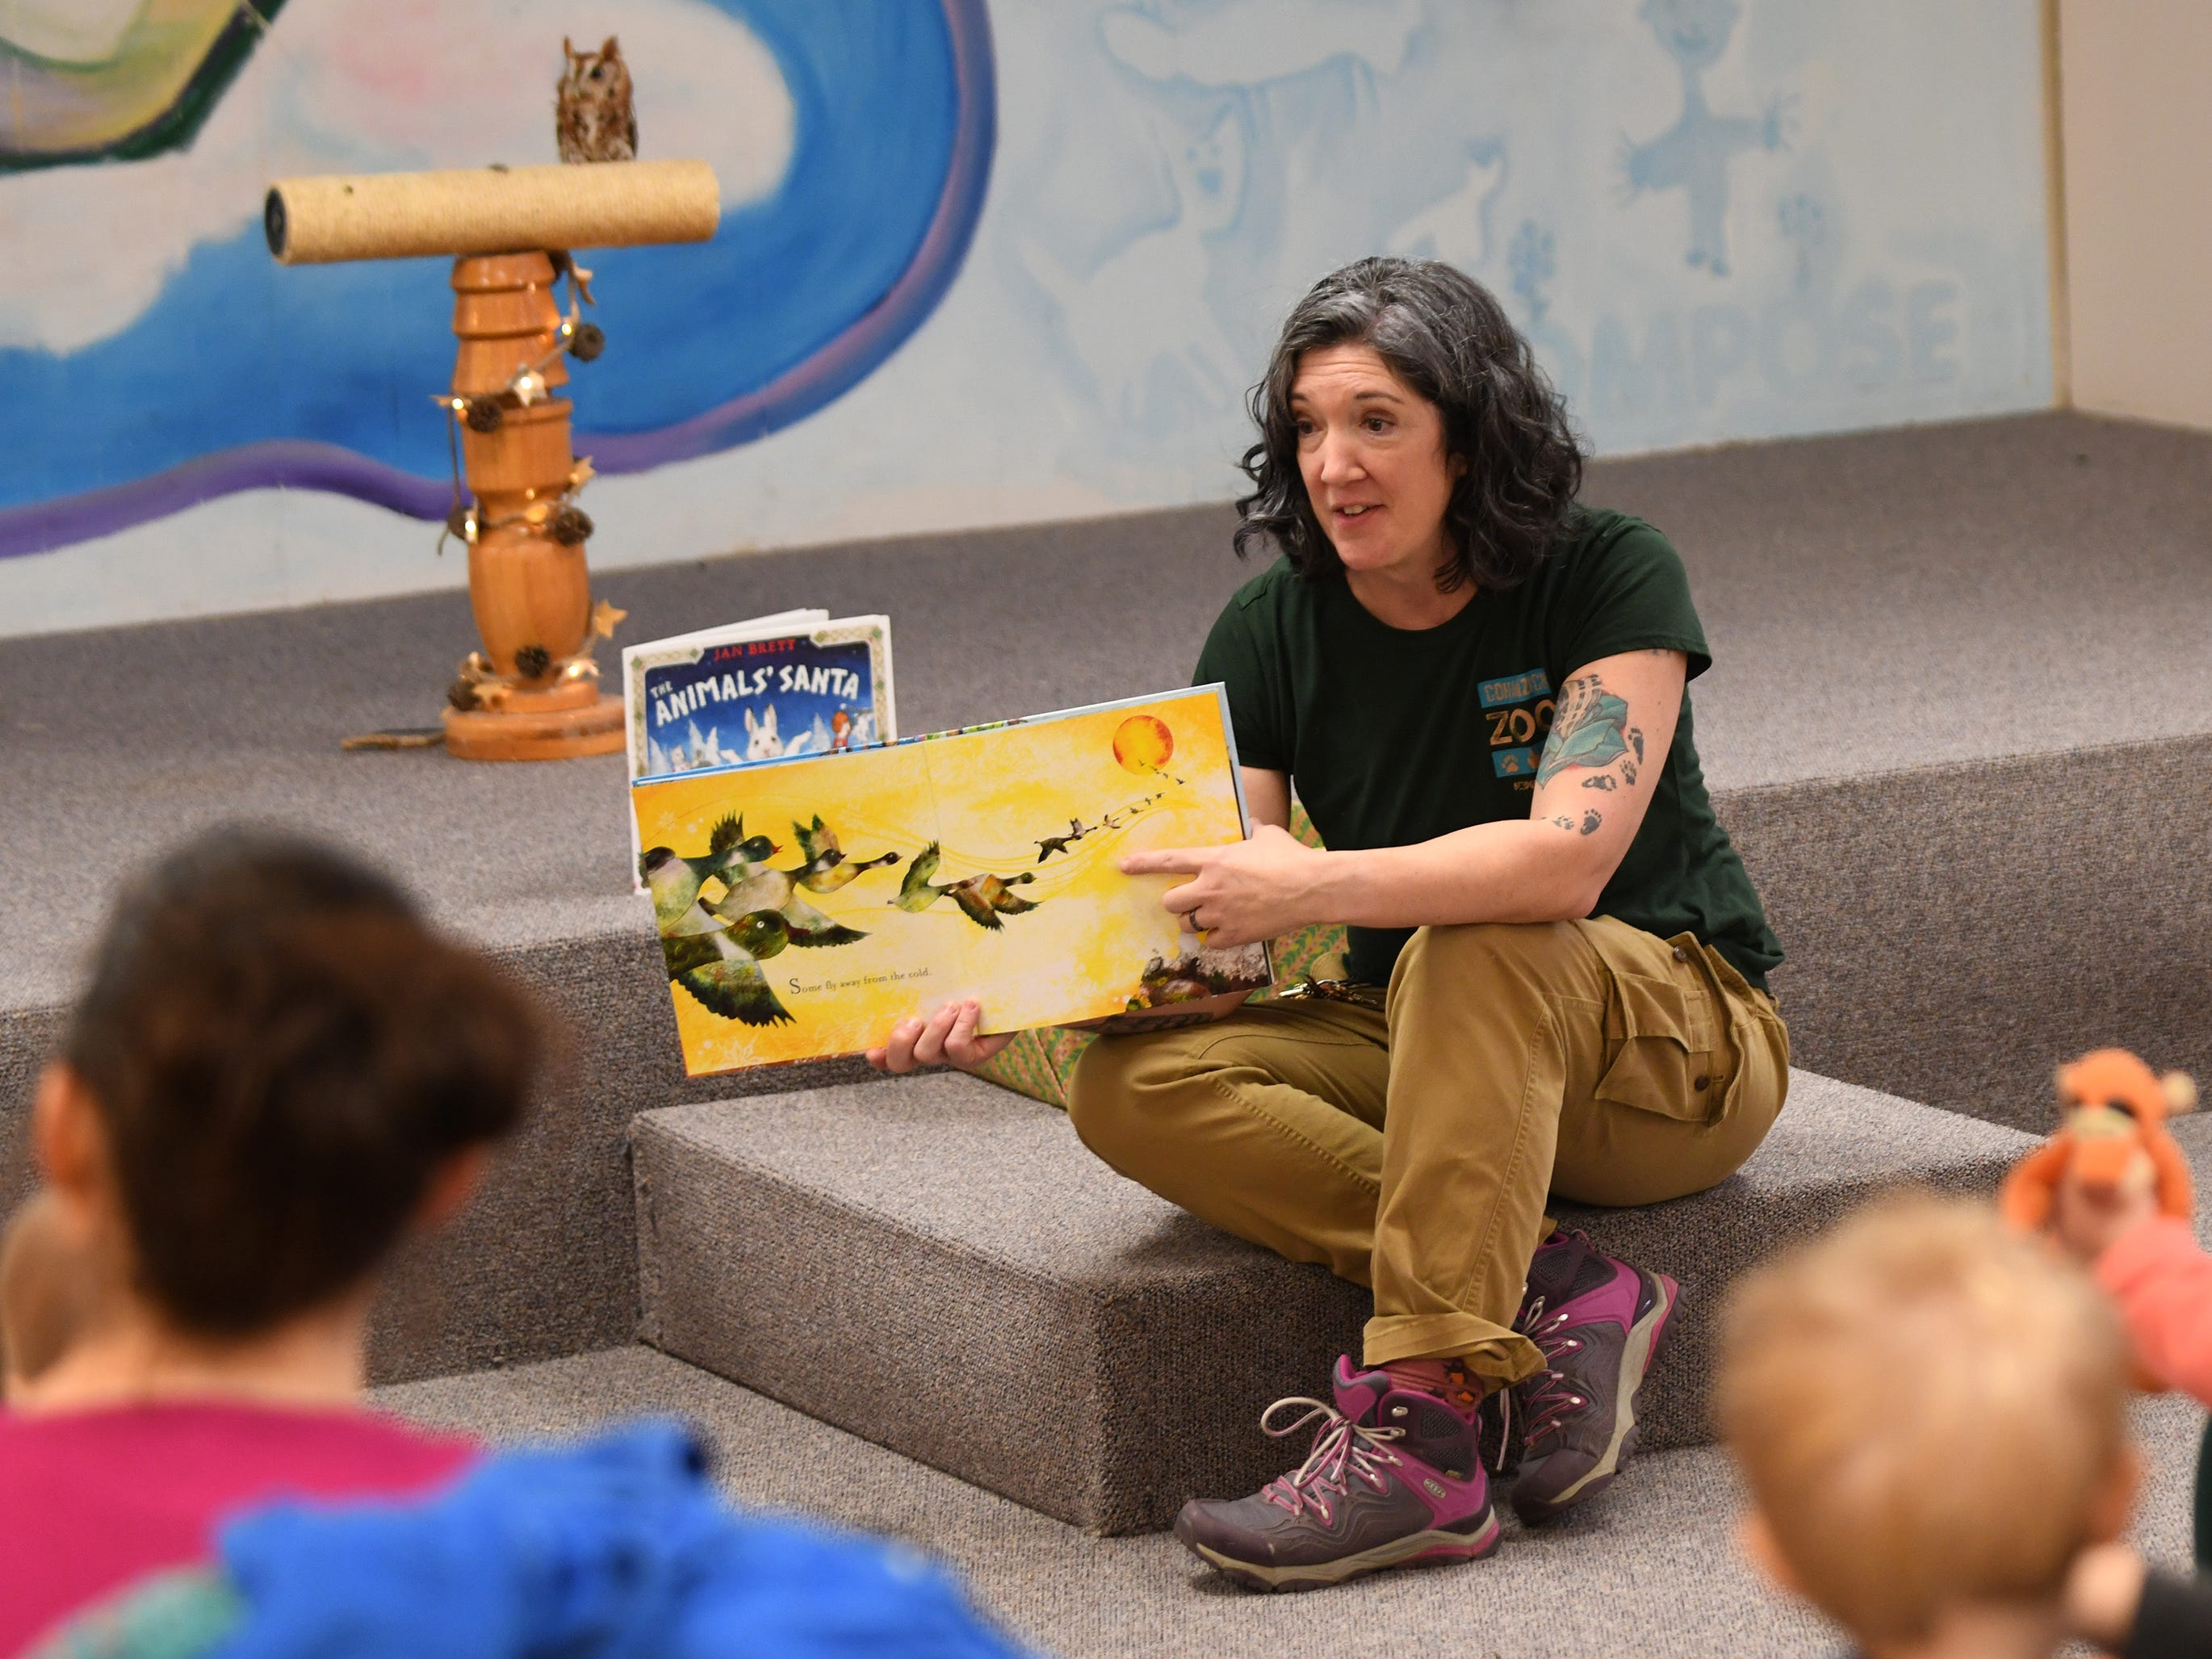 Cohanzick Zoo zookeeper Alison Bohn reads Snow Rabbit, Spring Rabbit during Zoobrary time at the Bridgeton Public Library on Thursday, December 20, 2018.